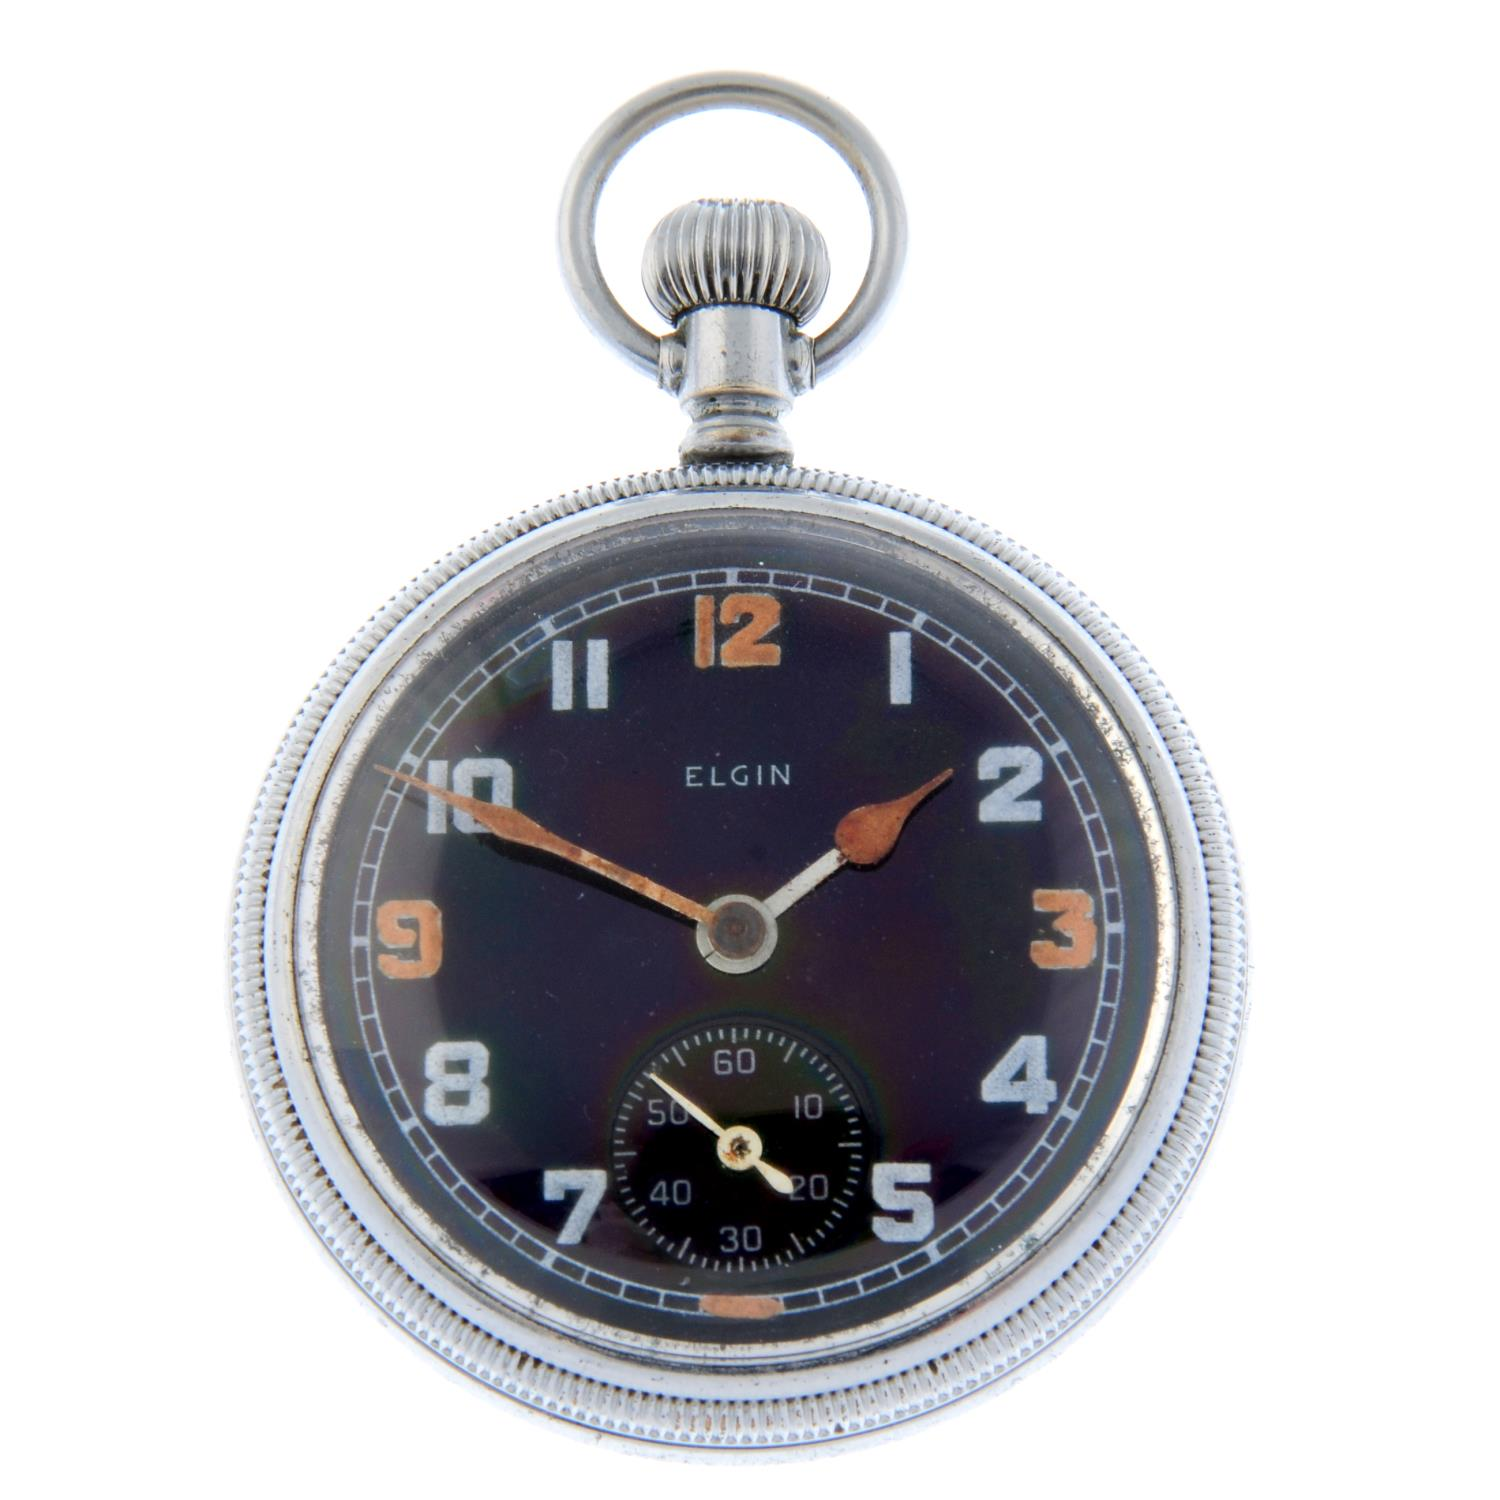 A military issue open face pocket watch by Elgin.